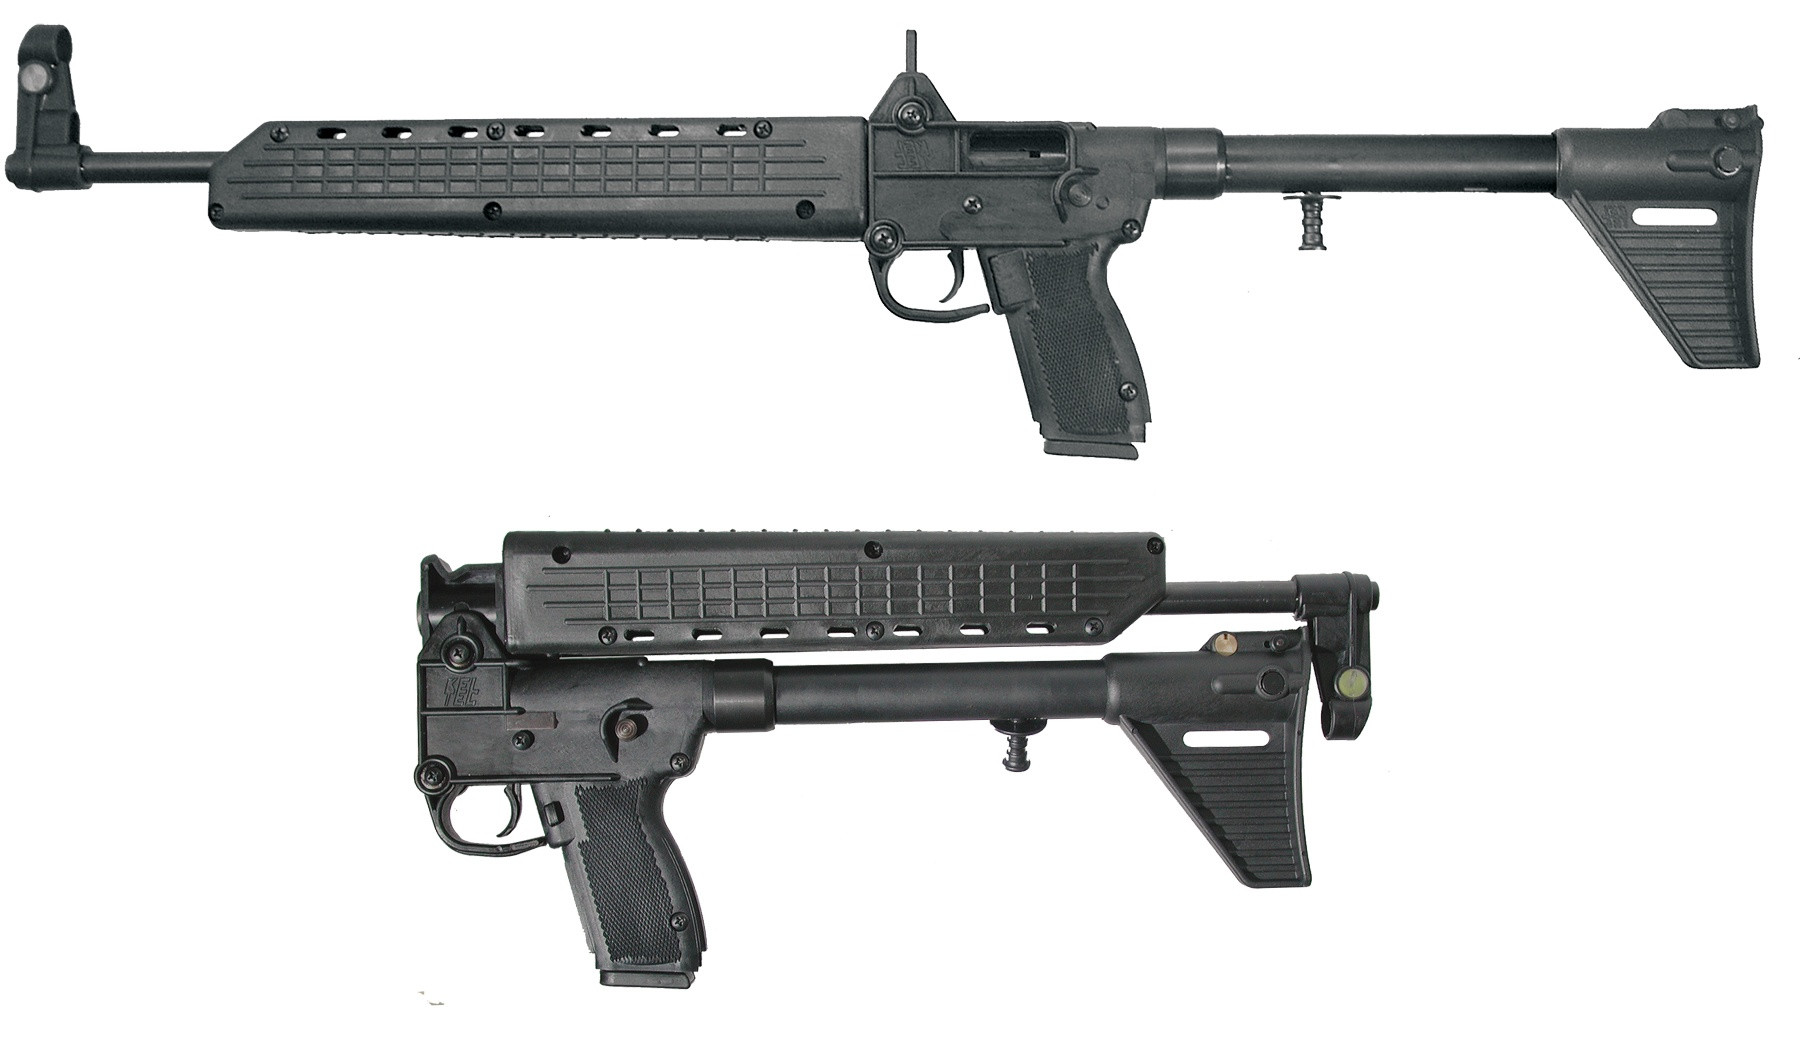 top-survival-rifles-2019-keltec-sub-2000-gun-news-daily